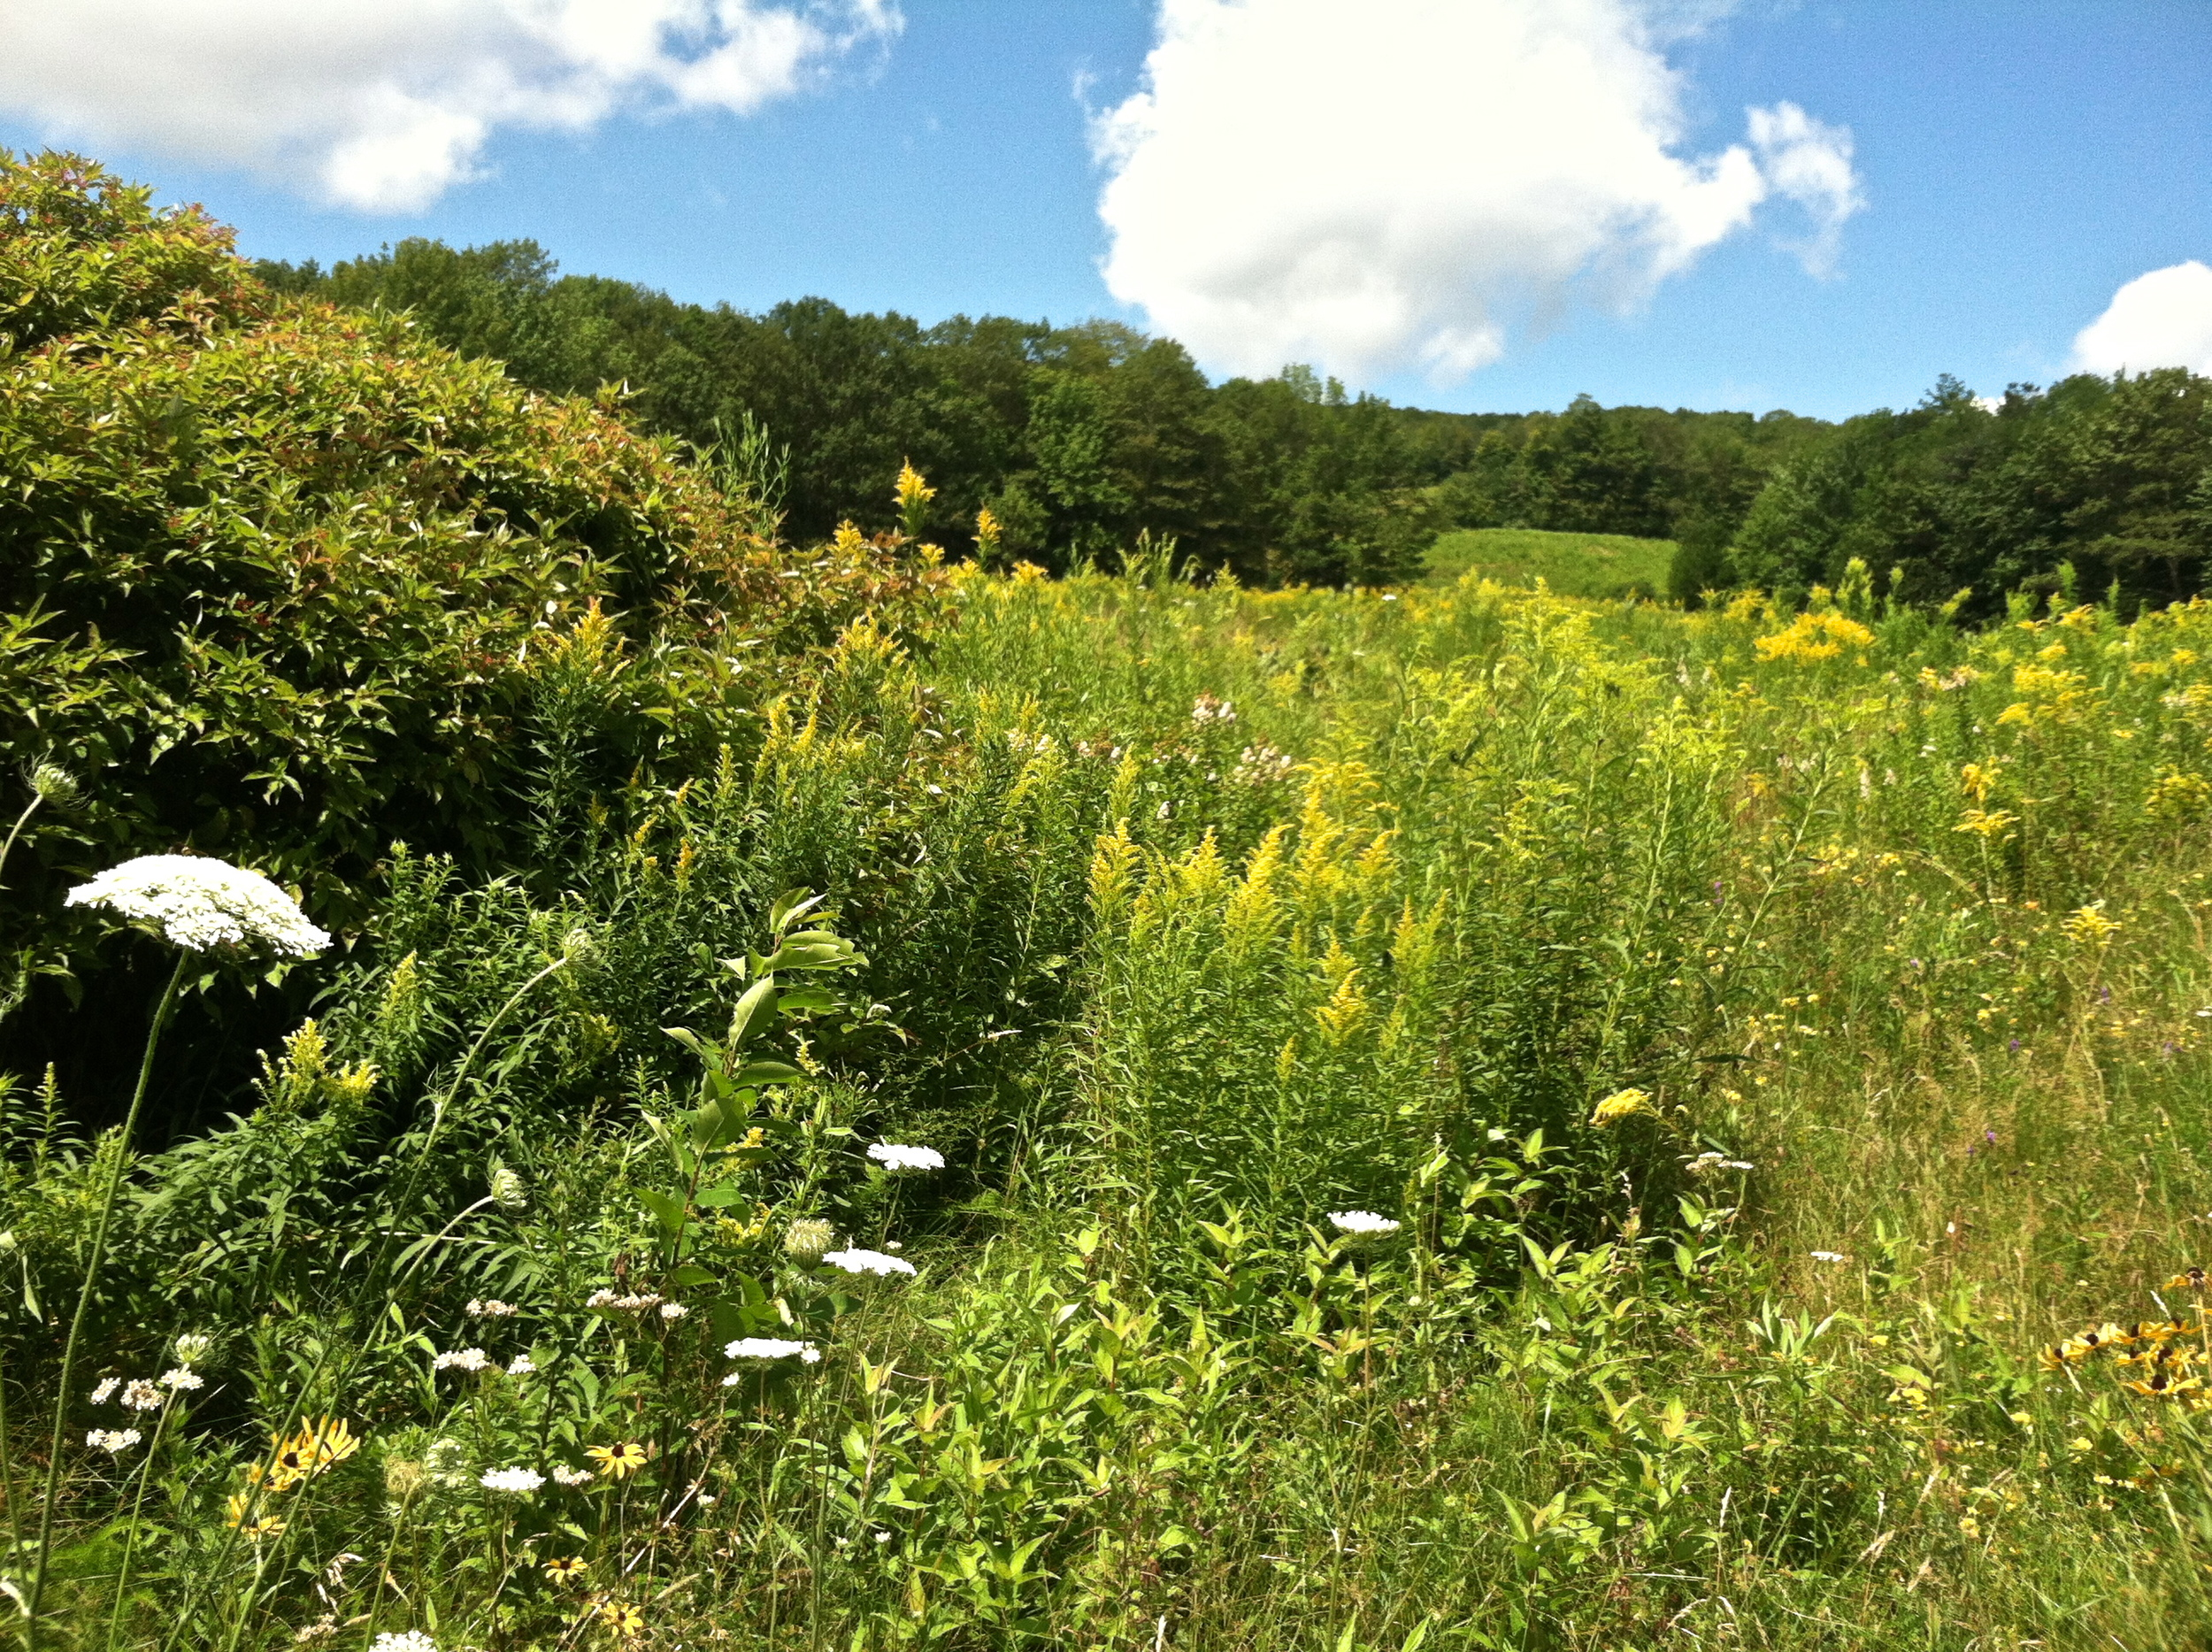 Took some photos of this meadow in Palermo while Andy was taking soft wood cuttings of dogwood for propagation.